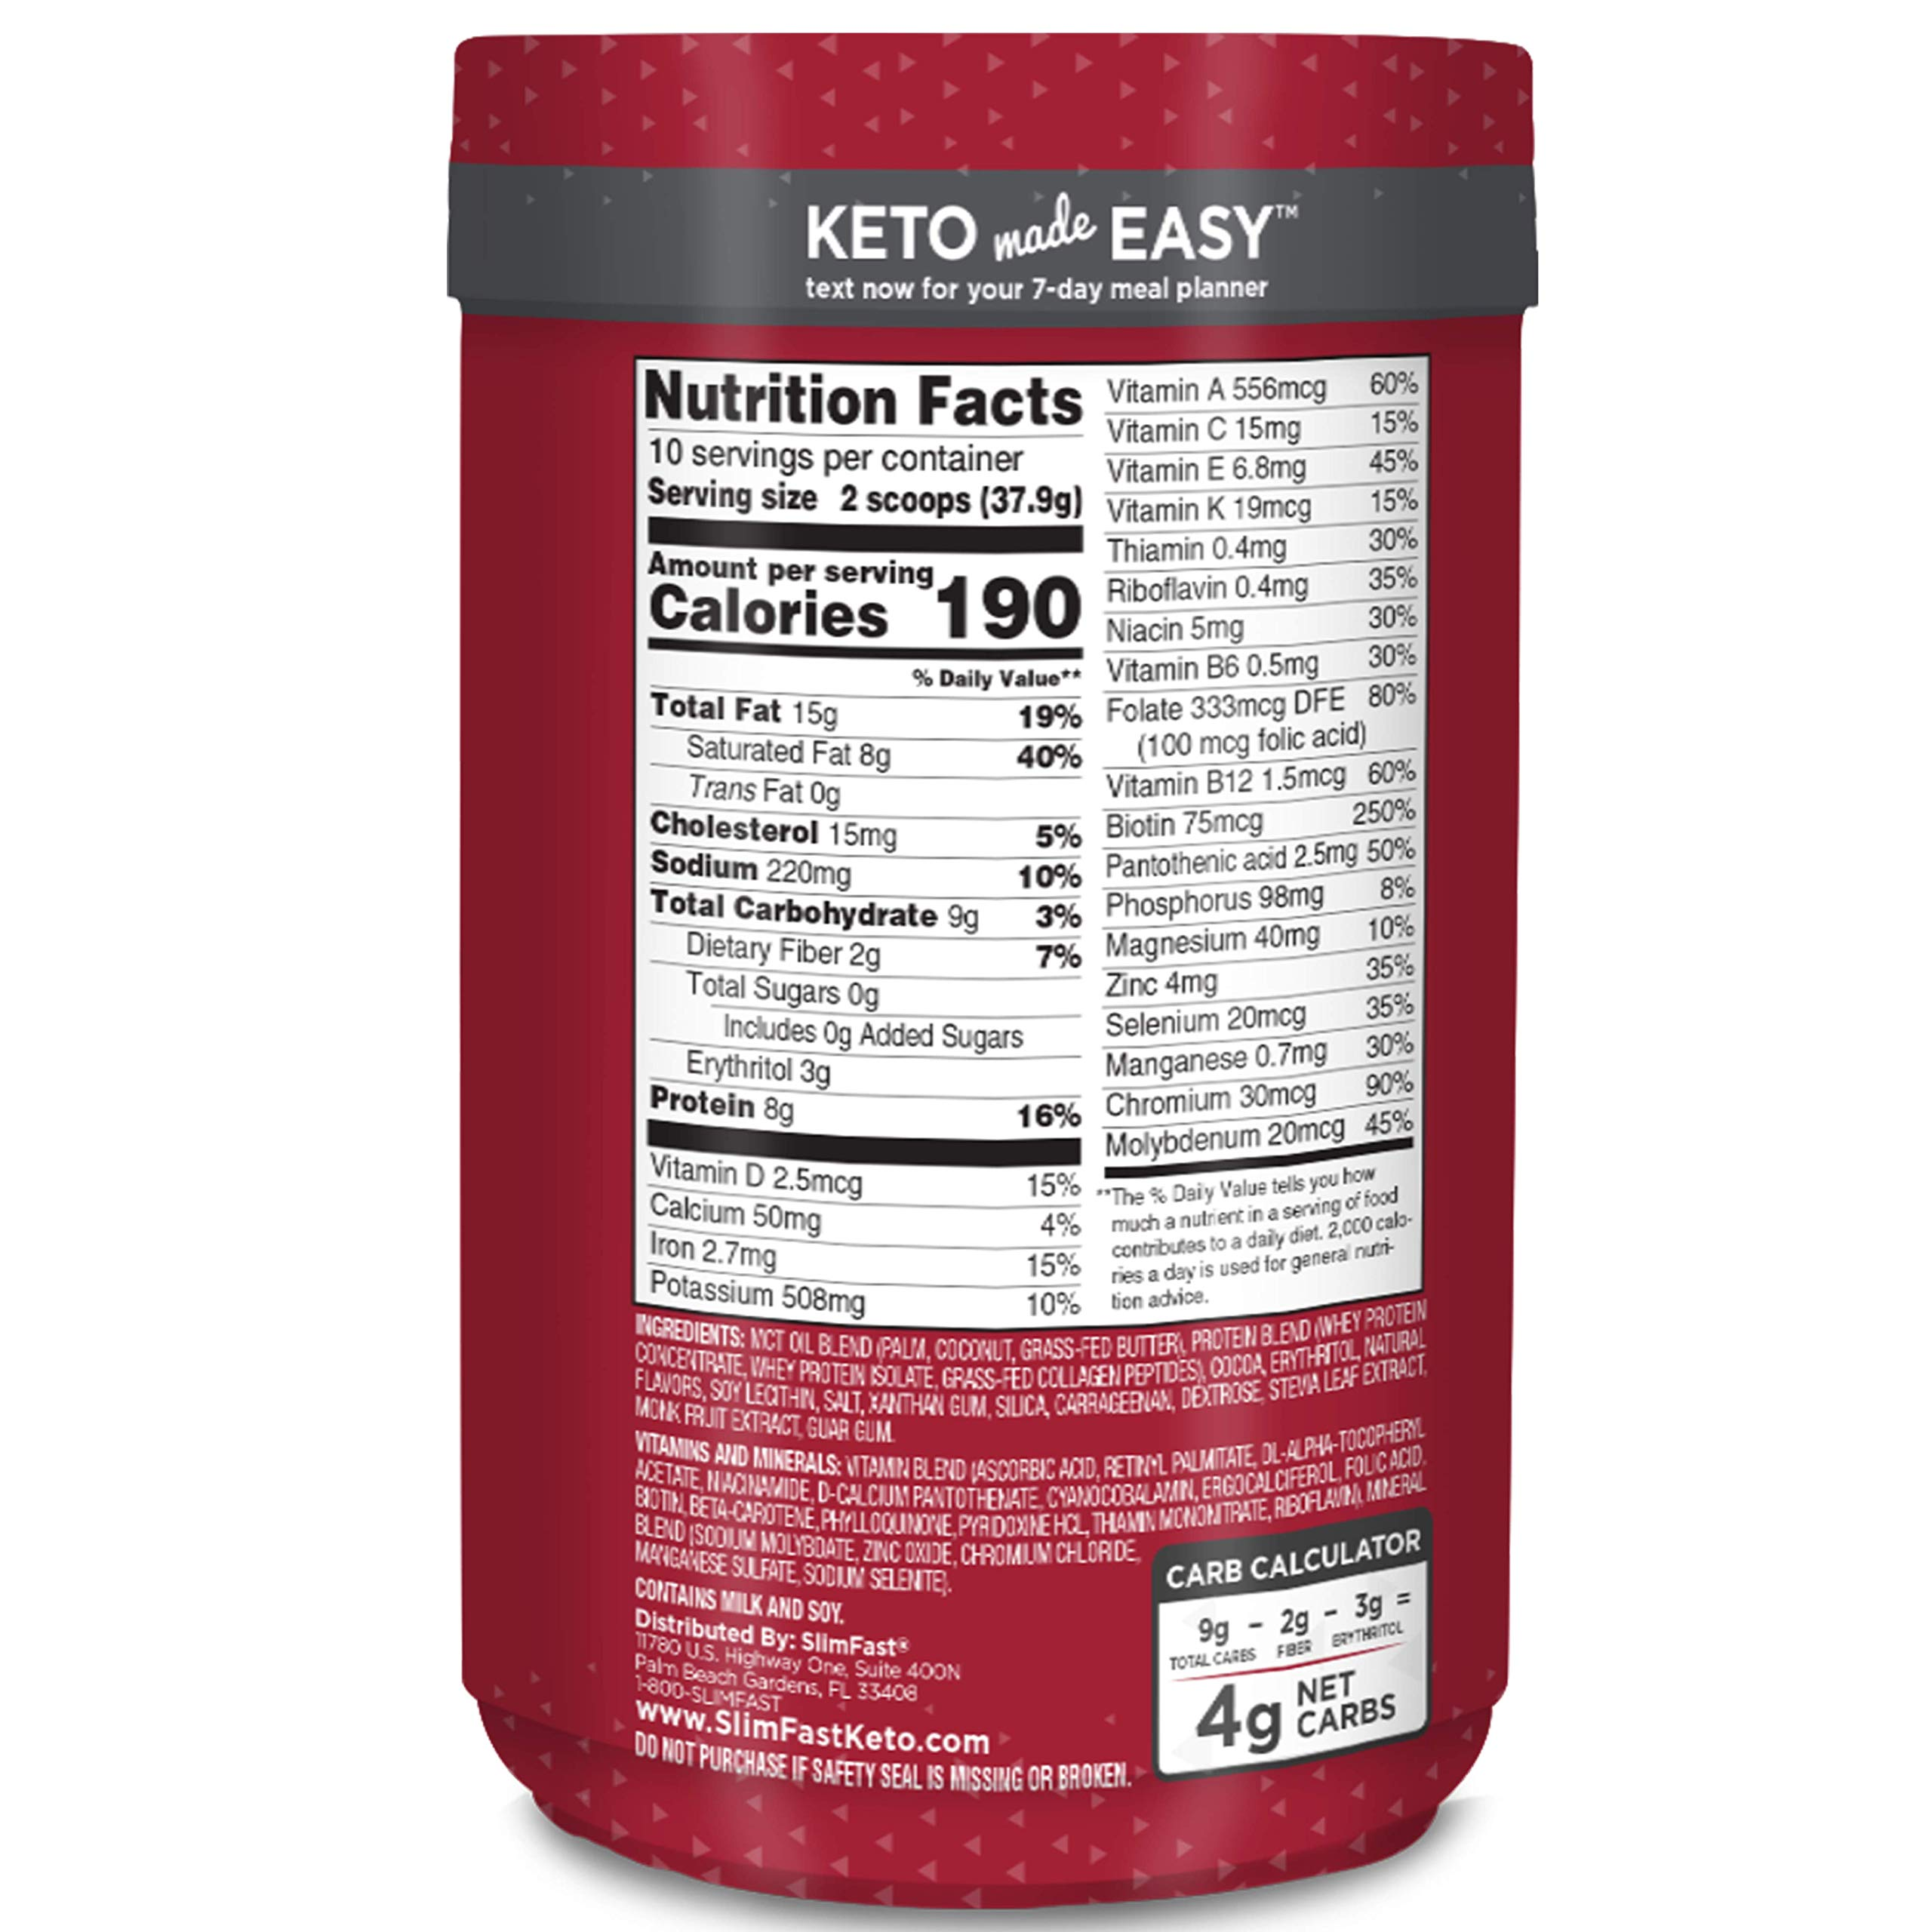 Slimfast Keto Meal Replacement Powder Fudge Brownie Batter Canister, 13.4 oz, Pack of 1 by SlimFast (Image #2)